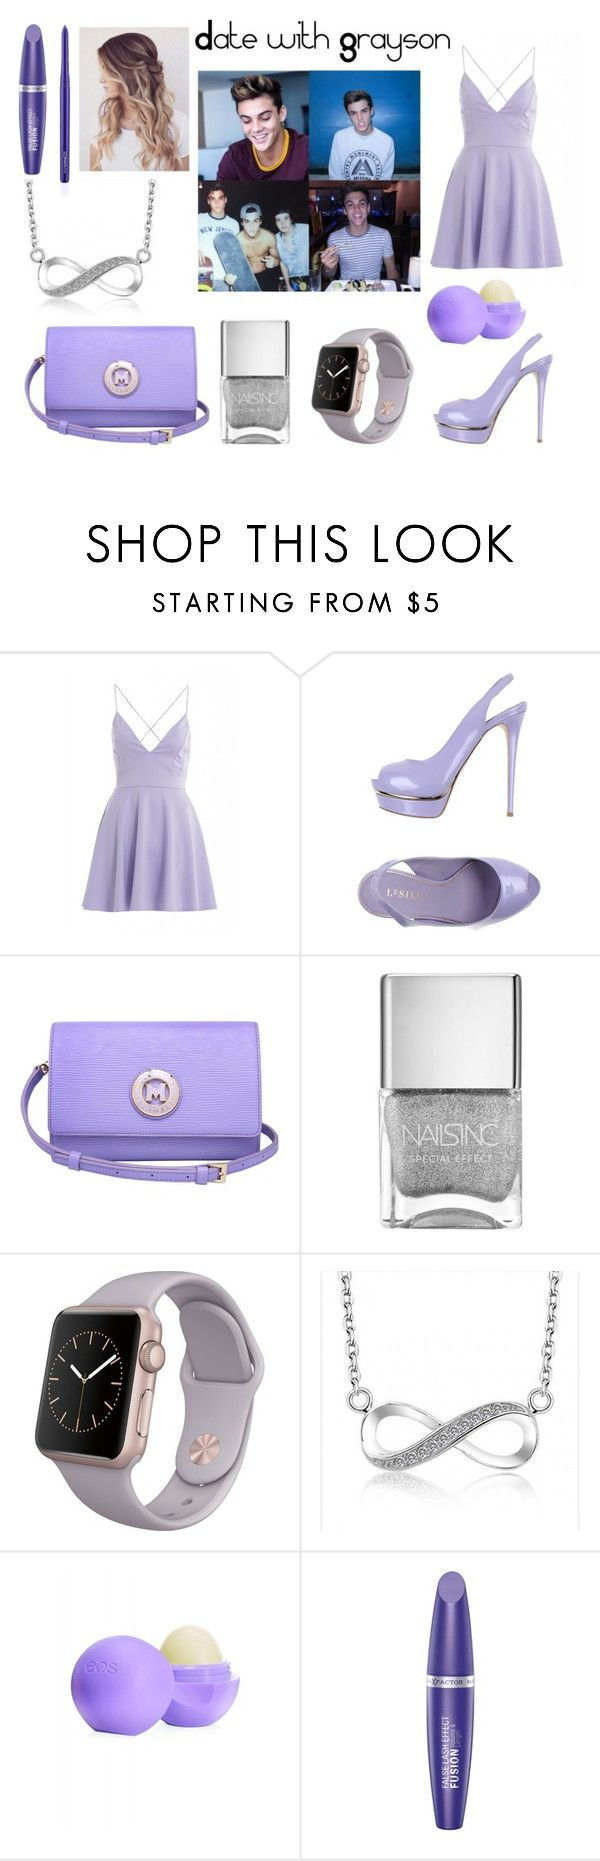 """Date with Grayson Dolan"" by janoskians1 ❤ liked on Polyvore featuring AX Paris, Le Silla, Metrocity, Eos, Max Factor and Dolan"